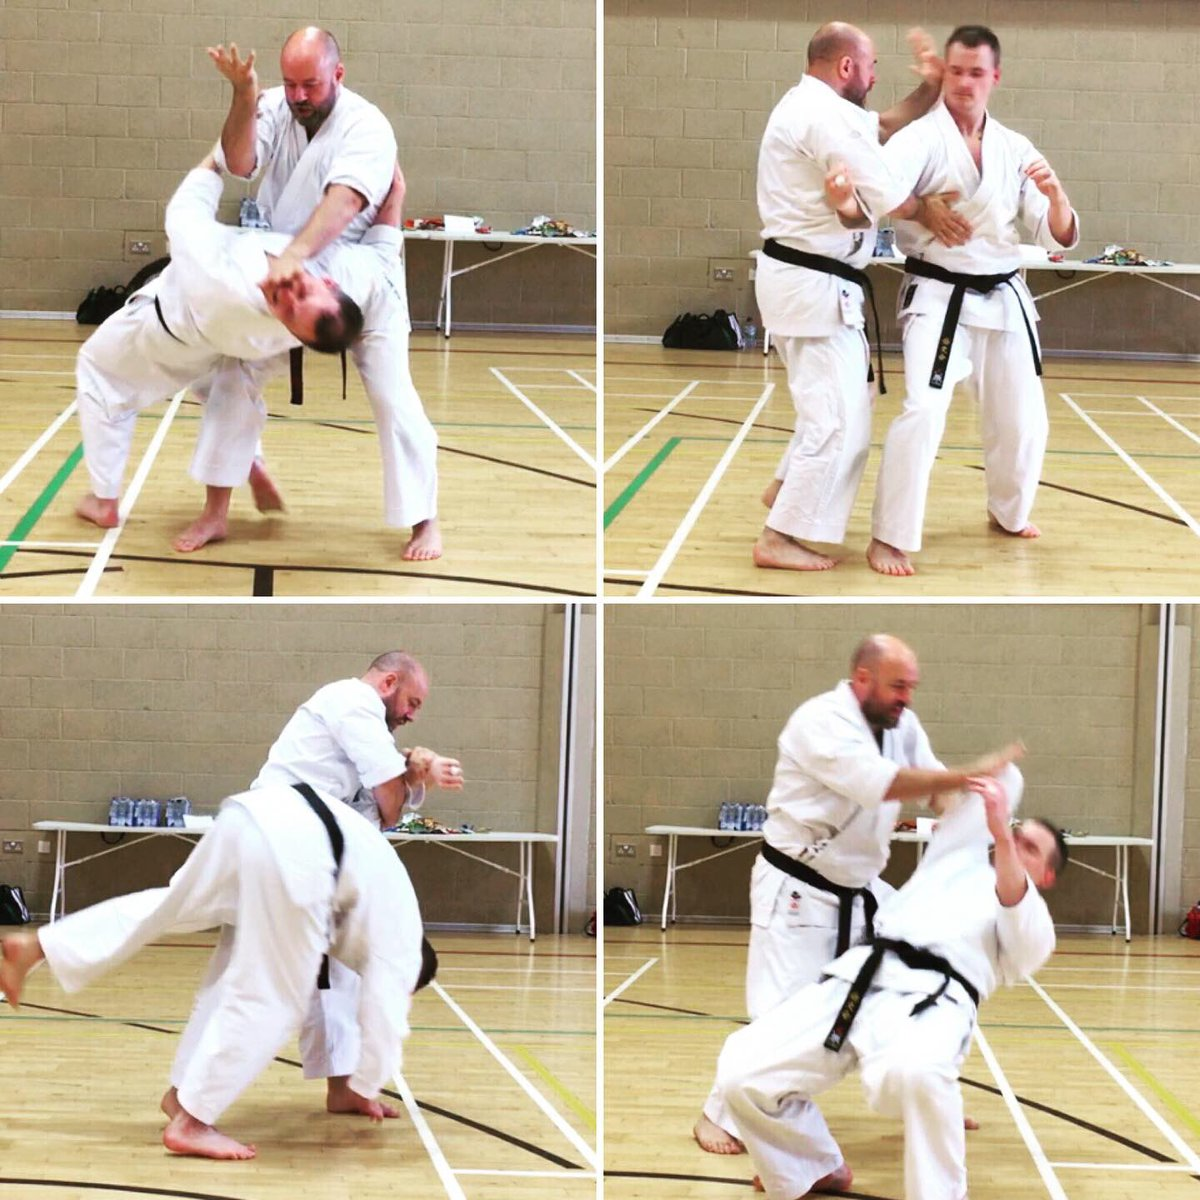 A deep dive into Kururunfa in Wrexham today! Bunkai and drills for the full kata; along with plenty of emphasis on the underlying concepts. It was a fun one! Thanks everyone! #iainabernethy #karate #kata #bunkai #practicalkatabunkai #practicalkarate #karatejutsu #karatedo